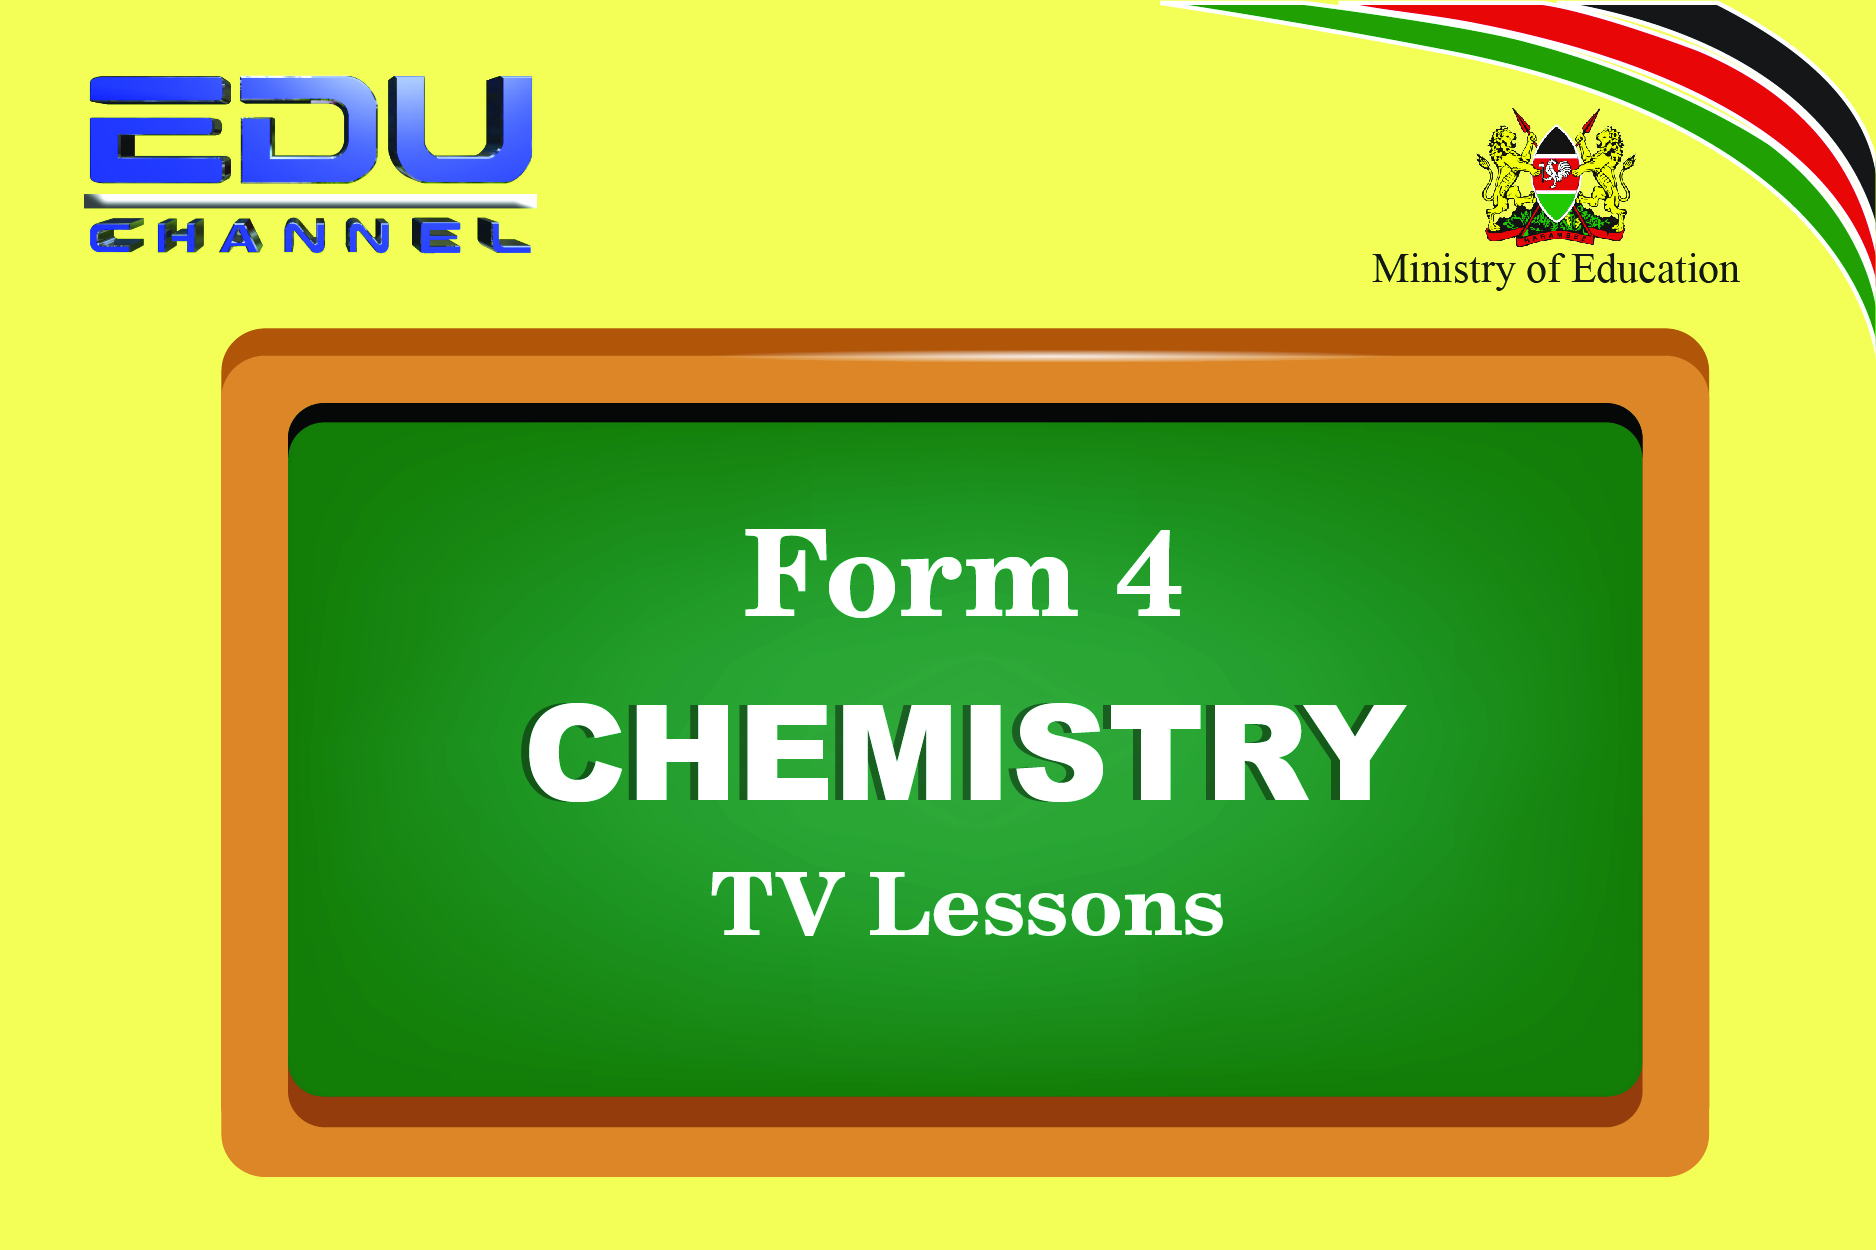 Form 4 Chemistry Lesson 3: Acids,Bases,Salts and Solubility Complex Ions and Qualitative analysis